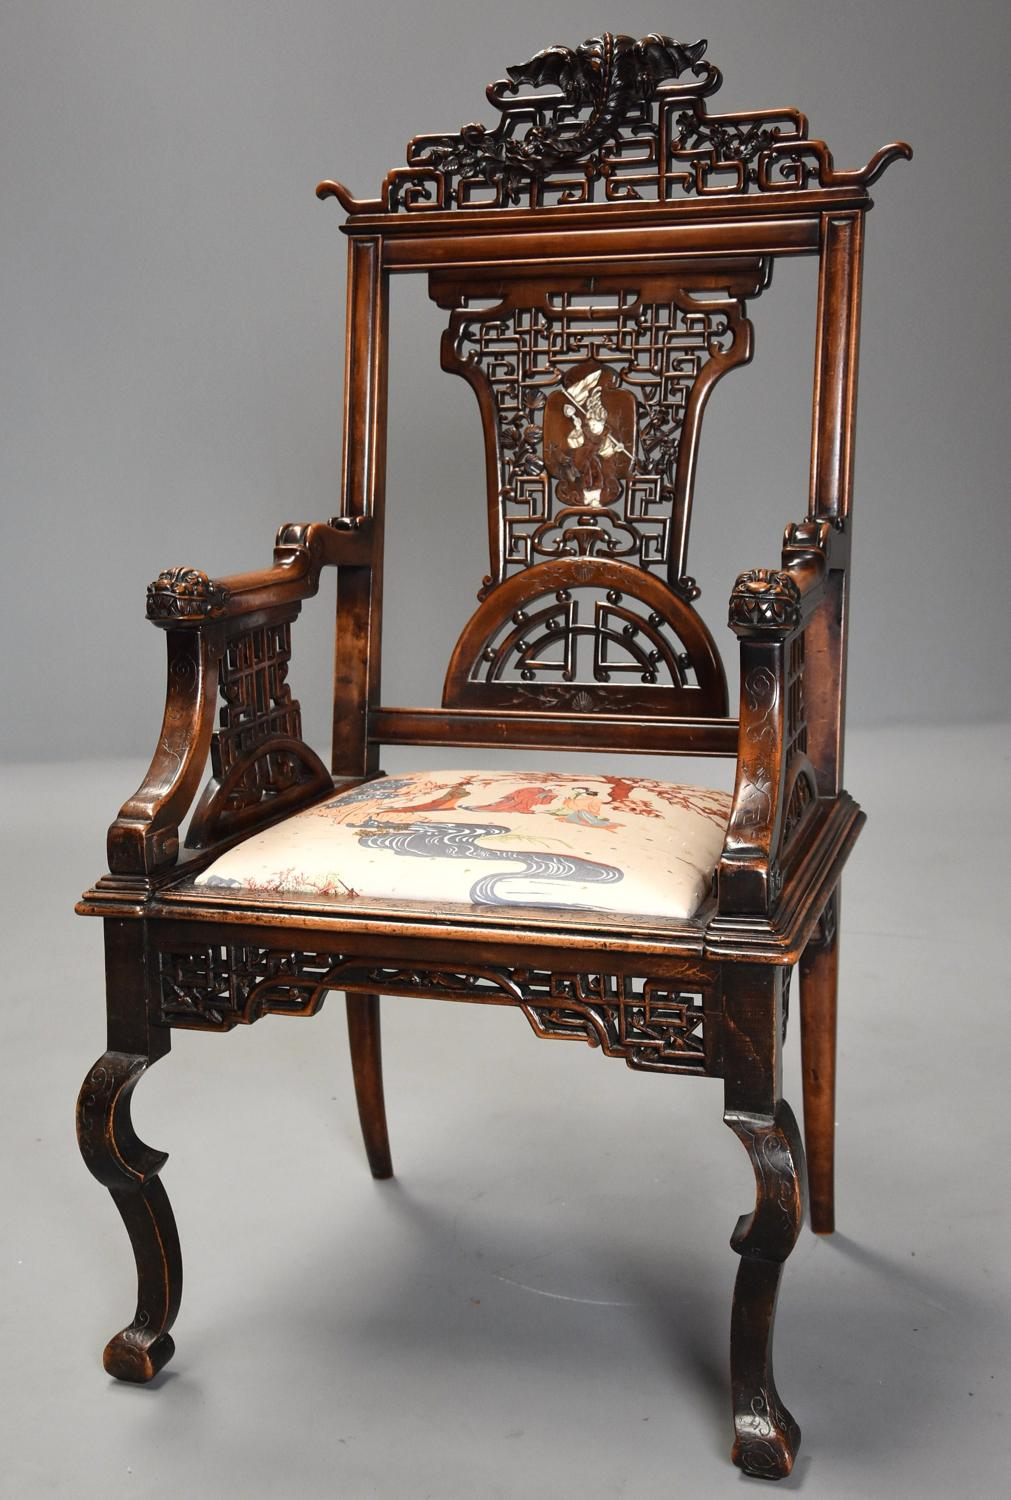 Exquisite rare French 19thc Japanese style armchair